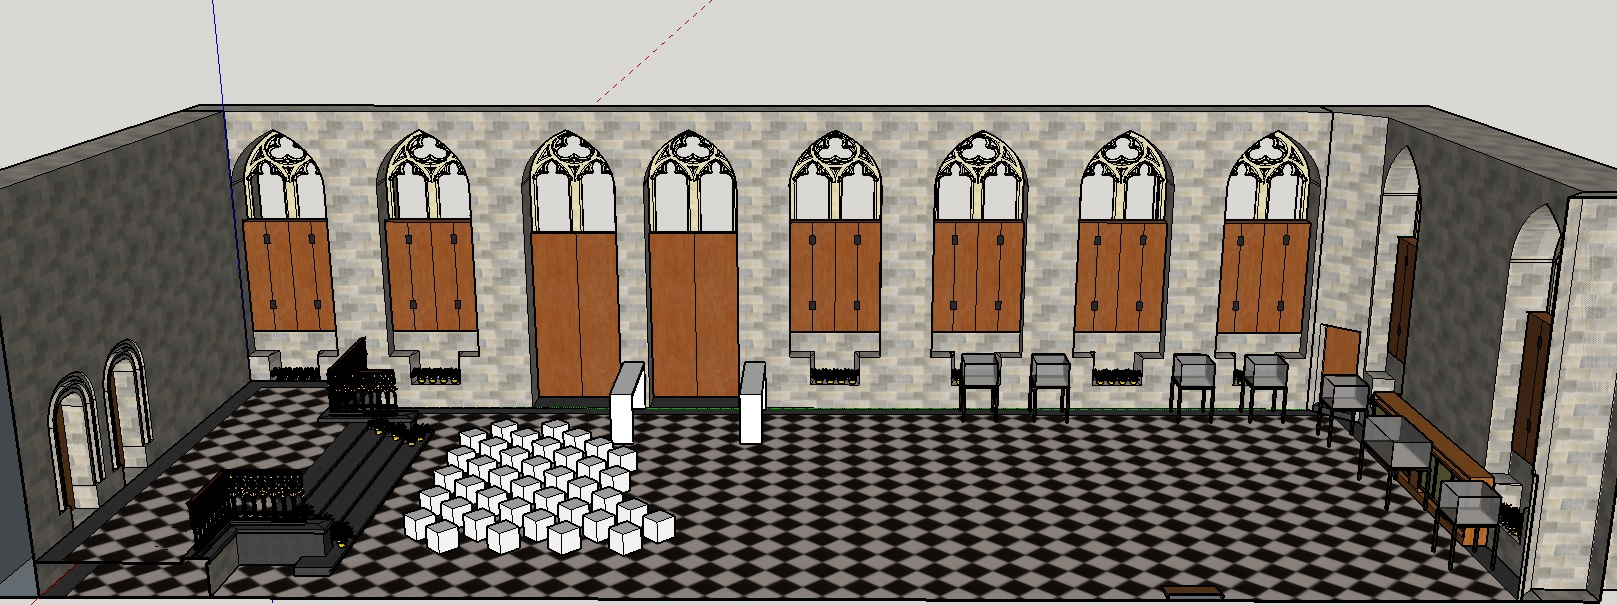 Sketchup Layout for the Leuven Playing Hall